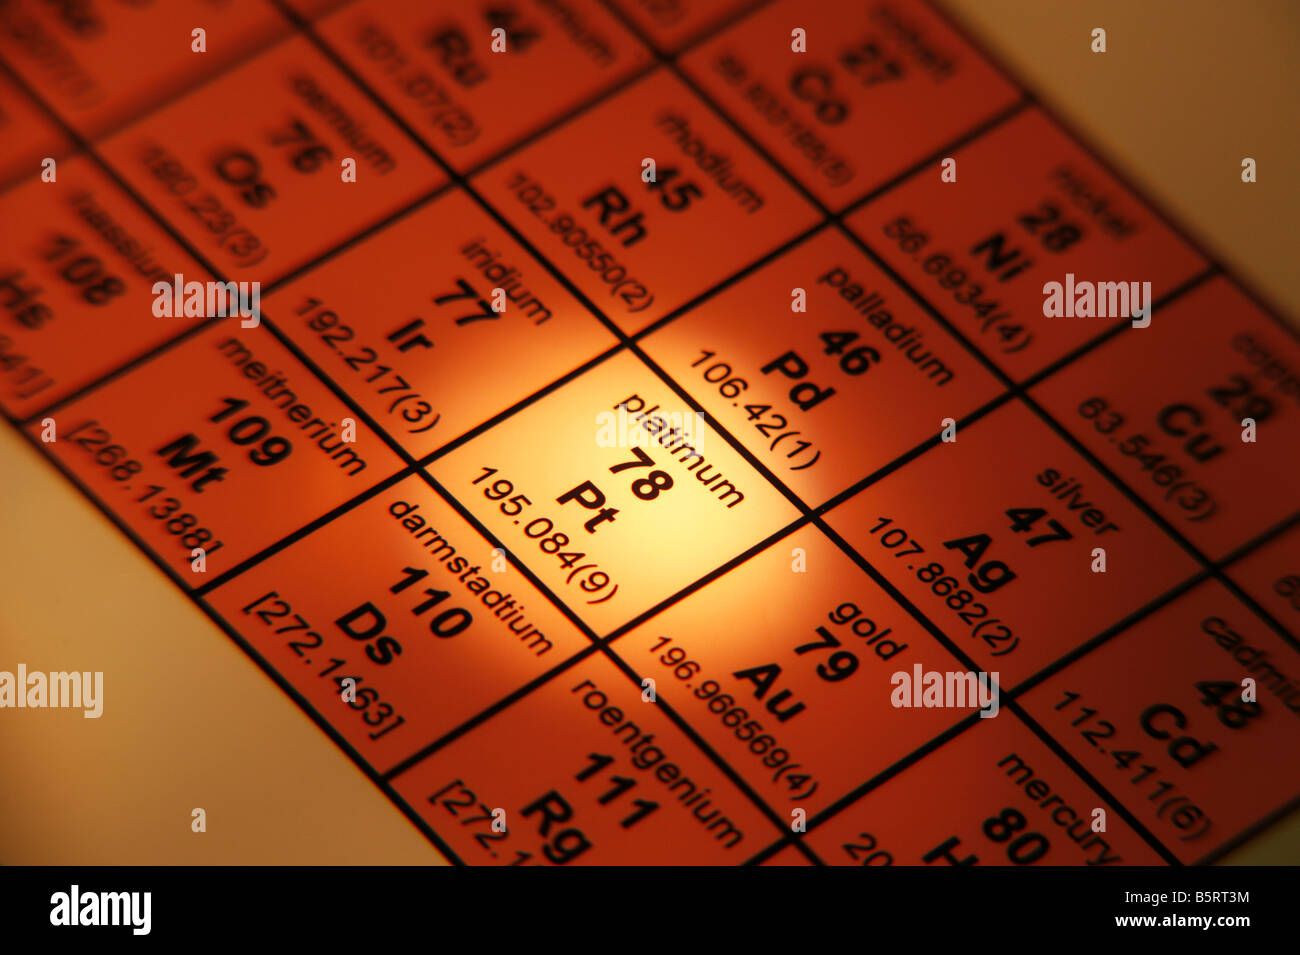 Platinum periodic table facts images periodic table images platinum periodic table facts gallery periodic table images platinum periodic table facts choice image periodic table gamestrikefo Image collections